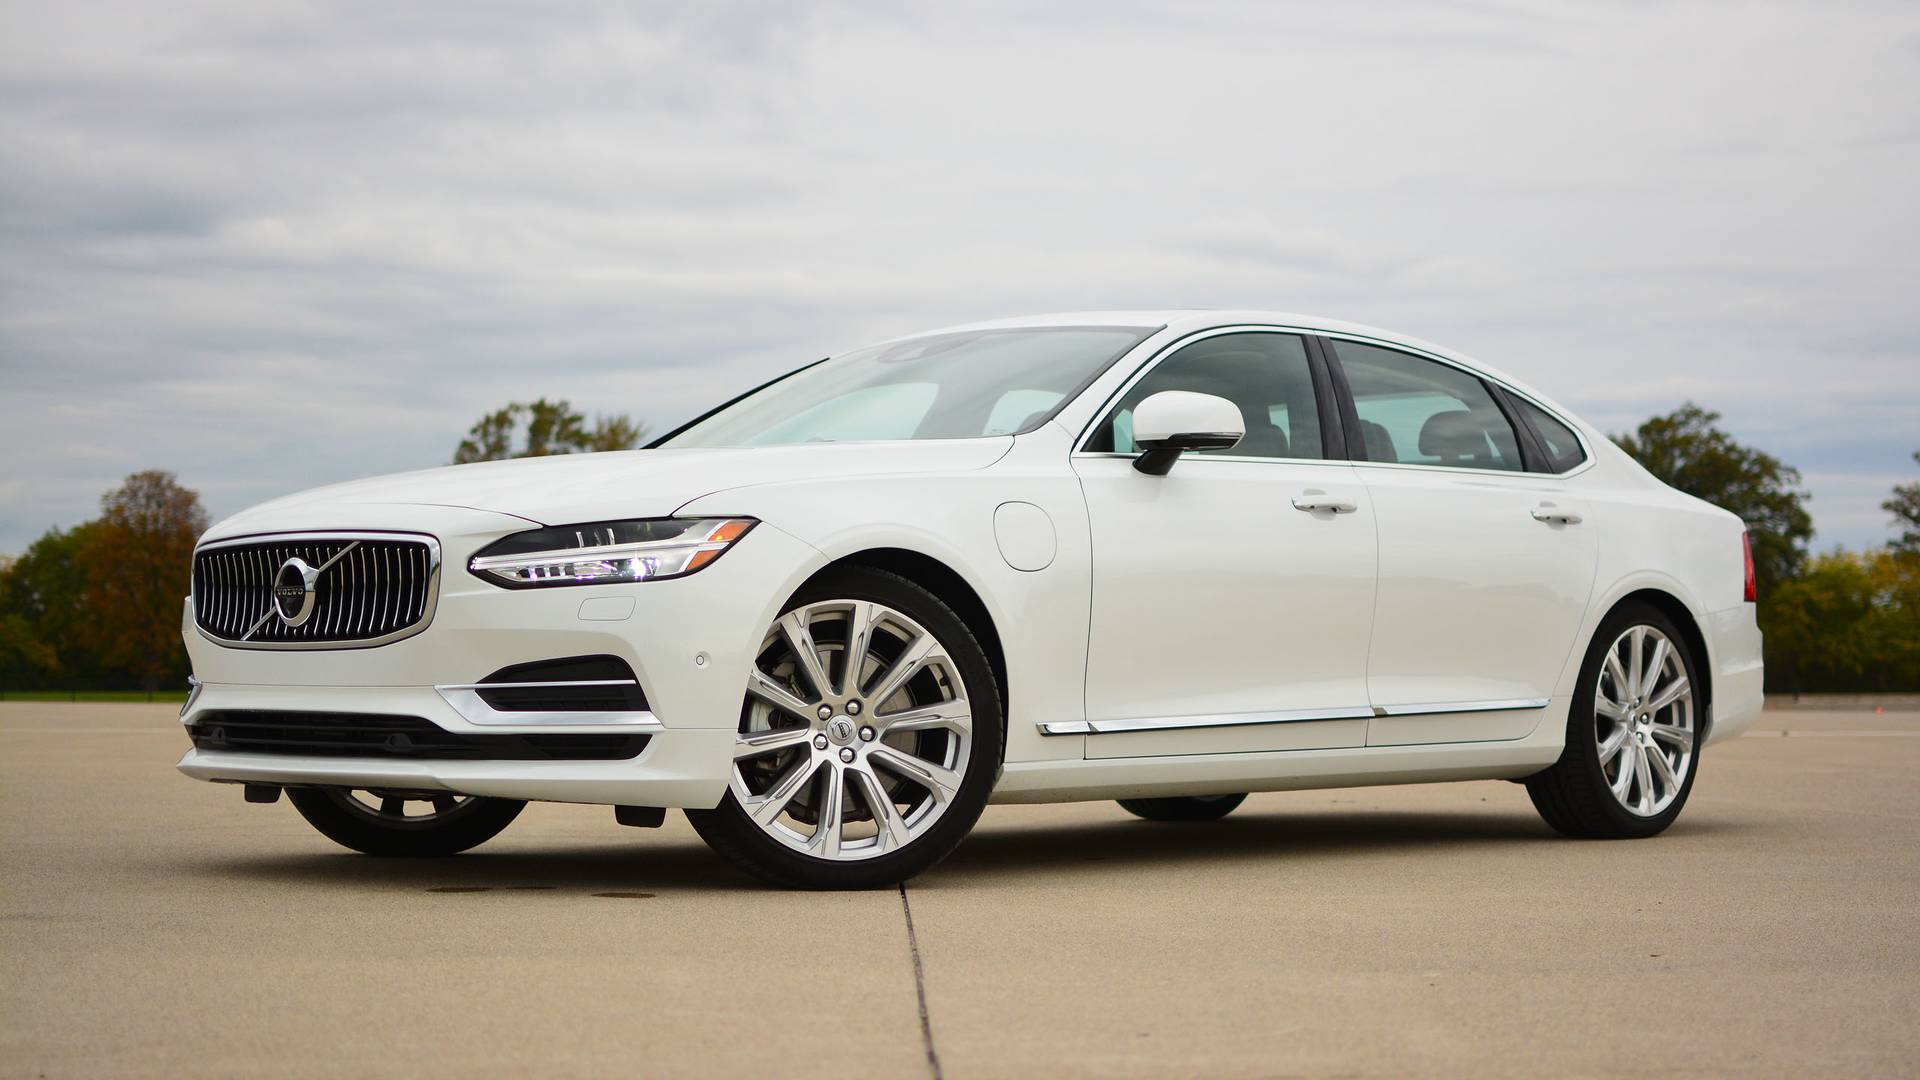 Volvo S90 T8 >> 2018 Volvo S90 T8 Review: Efficiency Done With Style